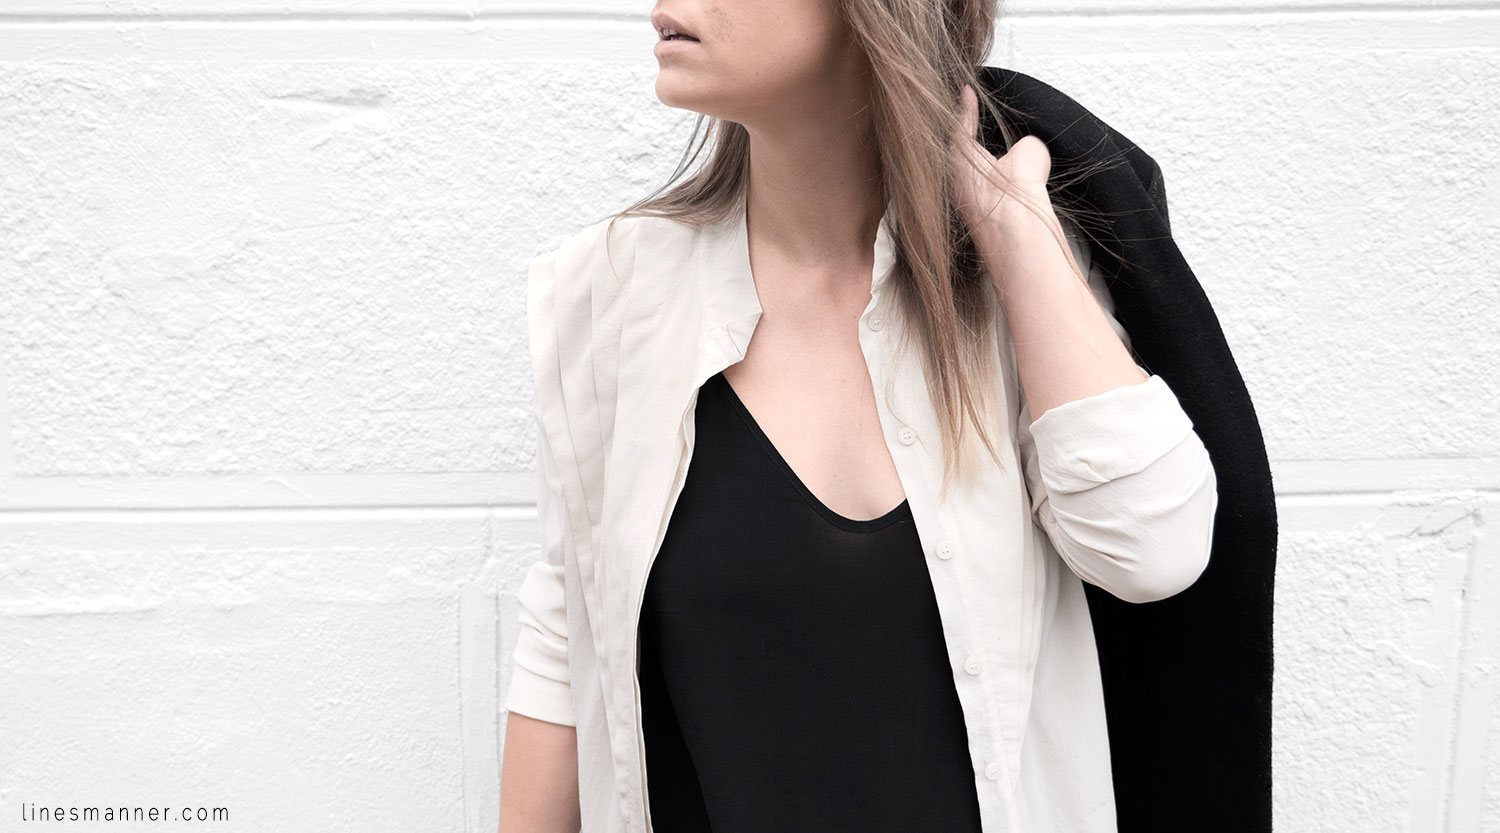 Lines-Manner-Timeless-Comfort-Essentials-Monochrome-Trend-Minimal-Textures-Fall-Leather-Details-Simplicity-Modern-Basics-Outfit-Structure-Relaxed-Leather-Luxurious-Sophistication-11